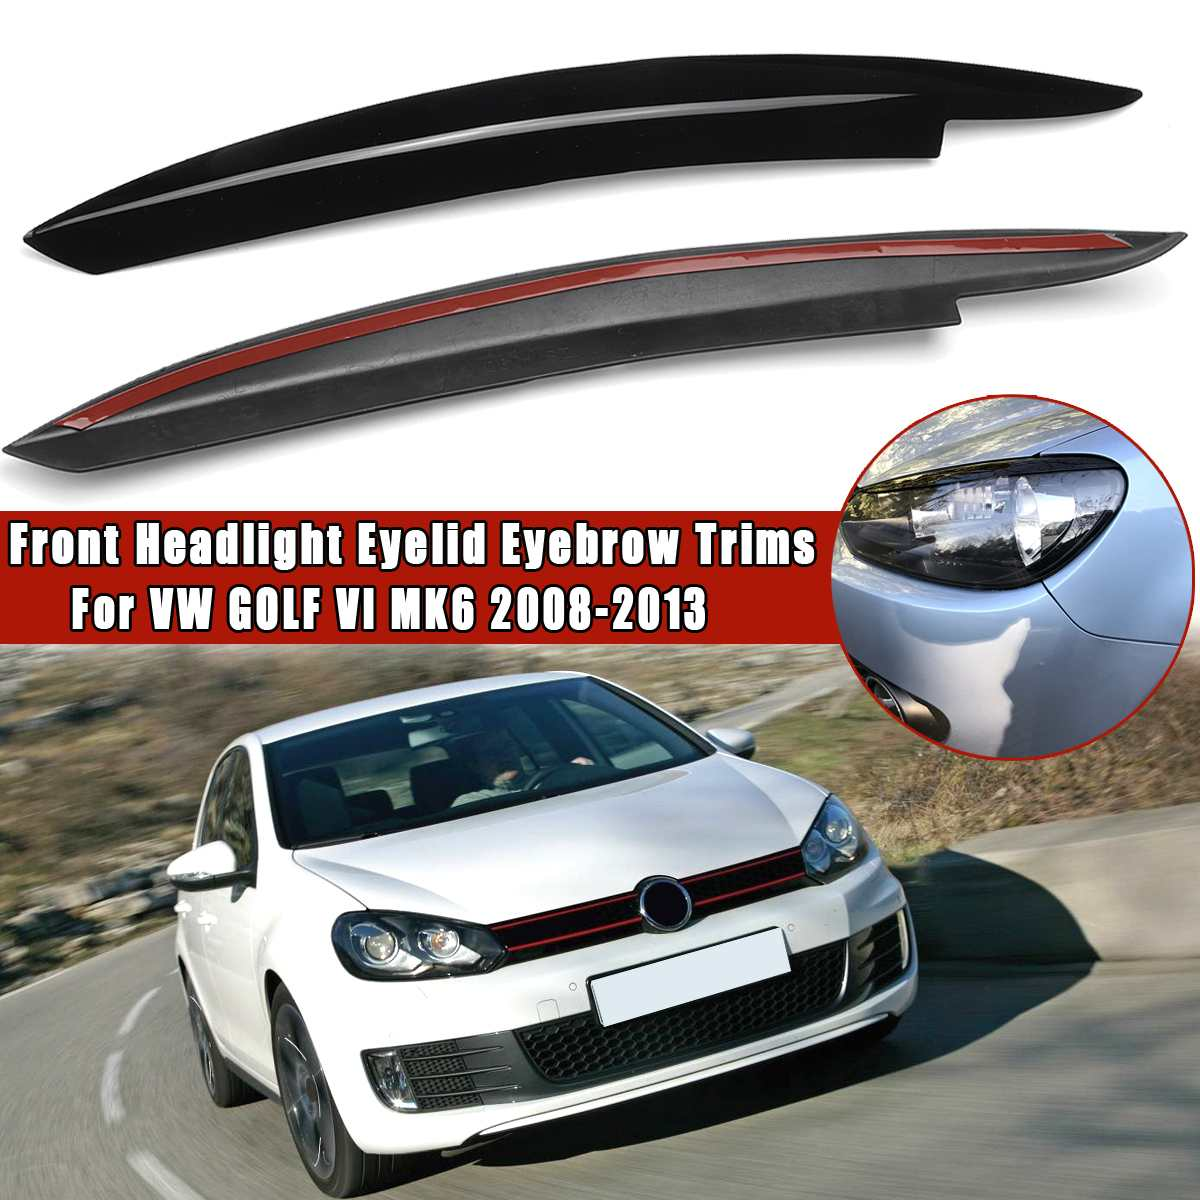 Car Headlight Eyebrow Eyelids ABS Stickers Trim Cover For VW GOLF VI MK6 2008 2009 2010 2011 2012 2013 Fit For GTI GTR GTD Model